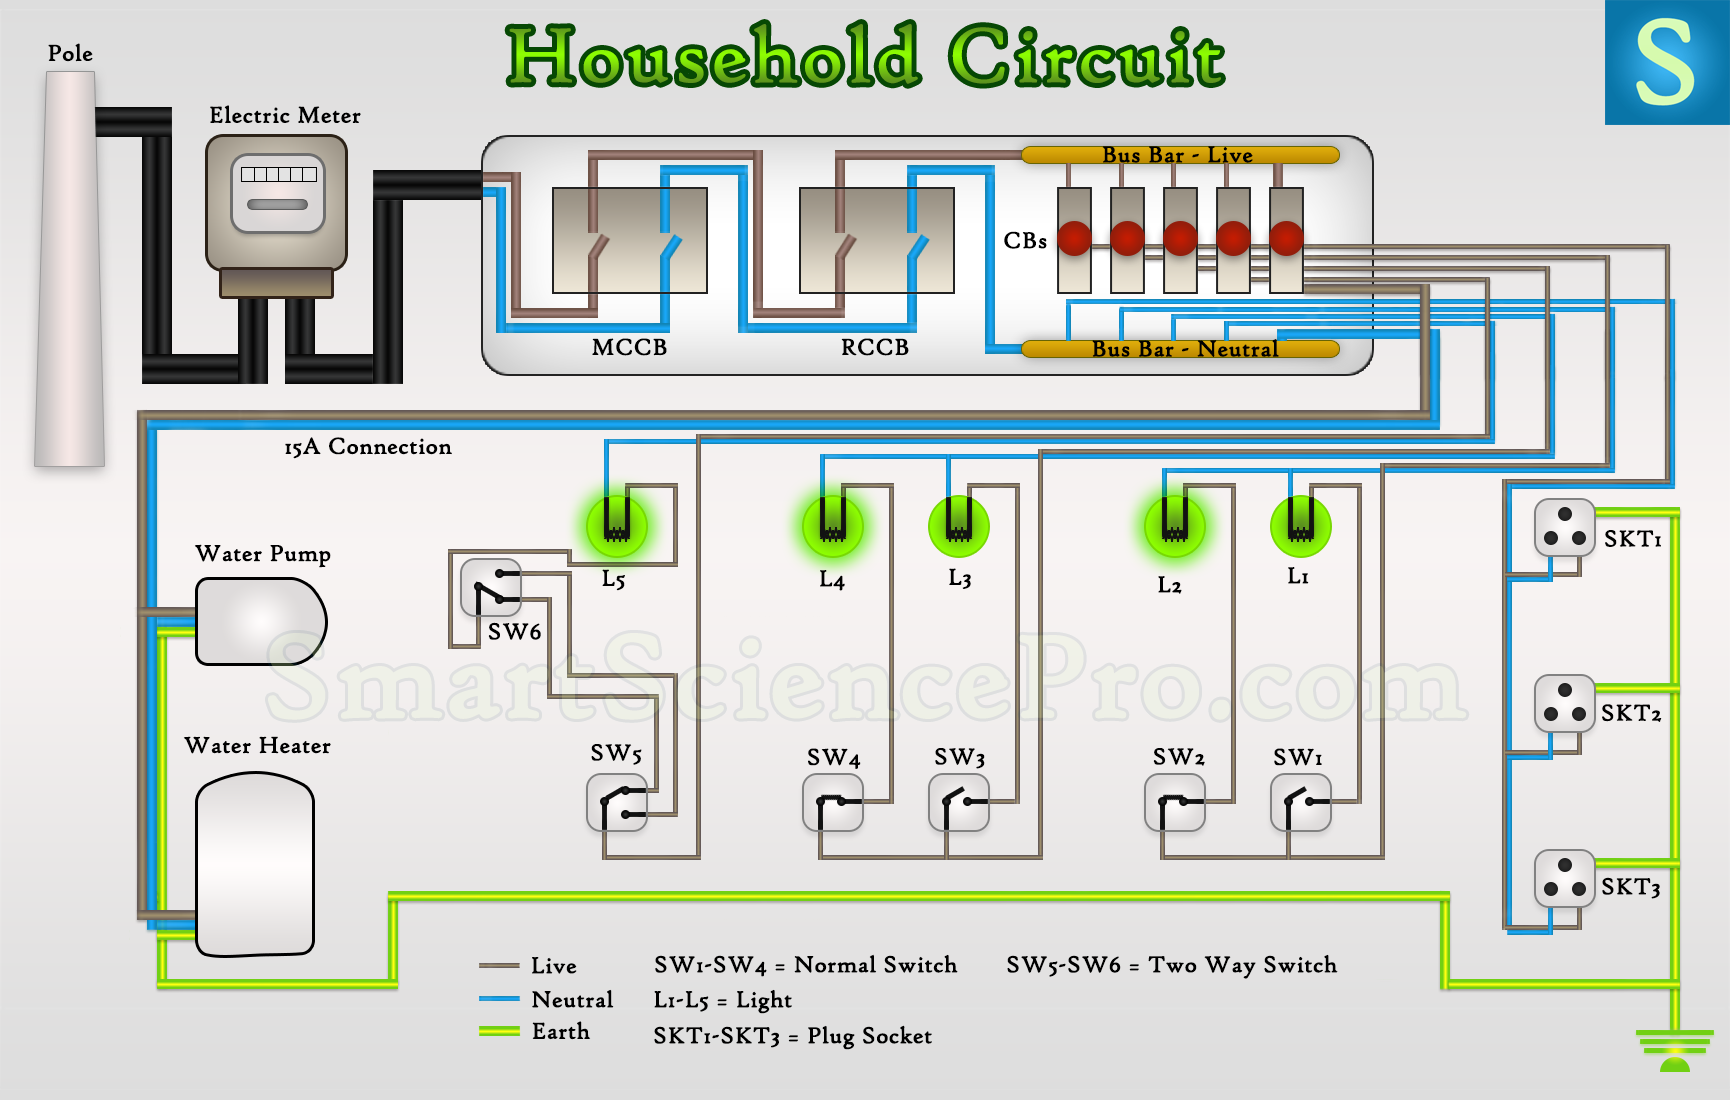 Basic Electrical Parts Components Of House Wiring Circuits Ssp Thorough And Provides A Great Introduction To Electric How Form The Household Circuit